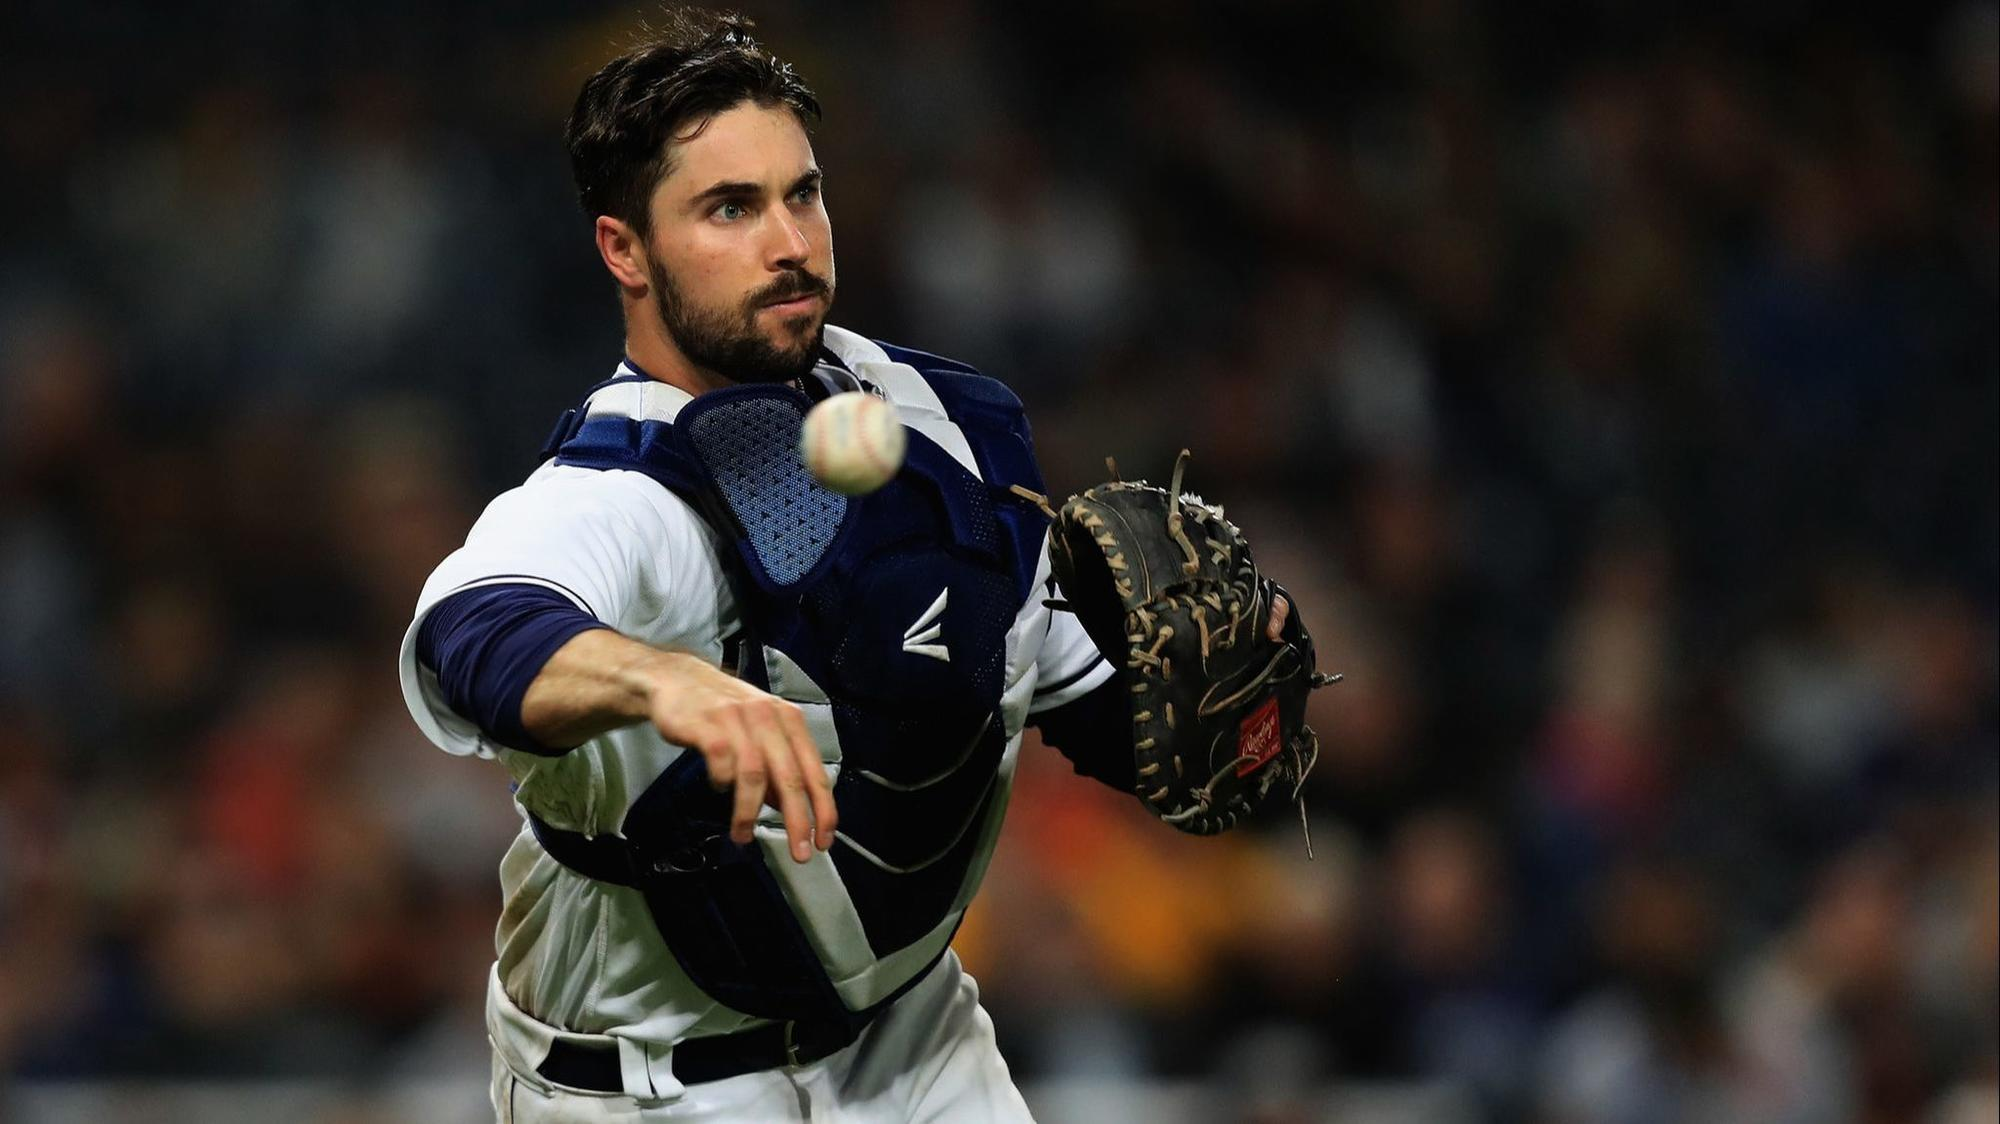 Sd-sp-padres-first-pitch-austin-hedges-throwing-20180508